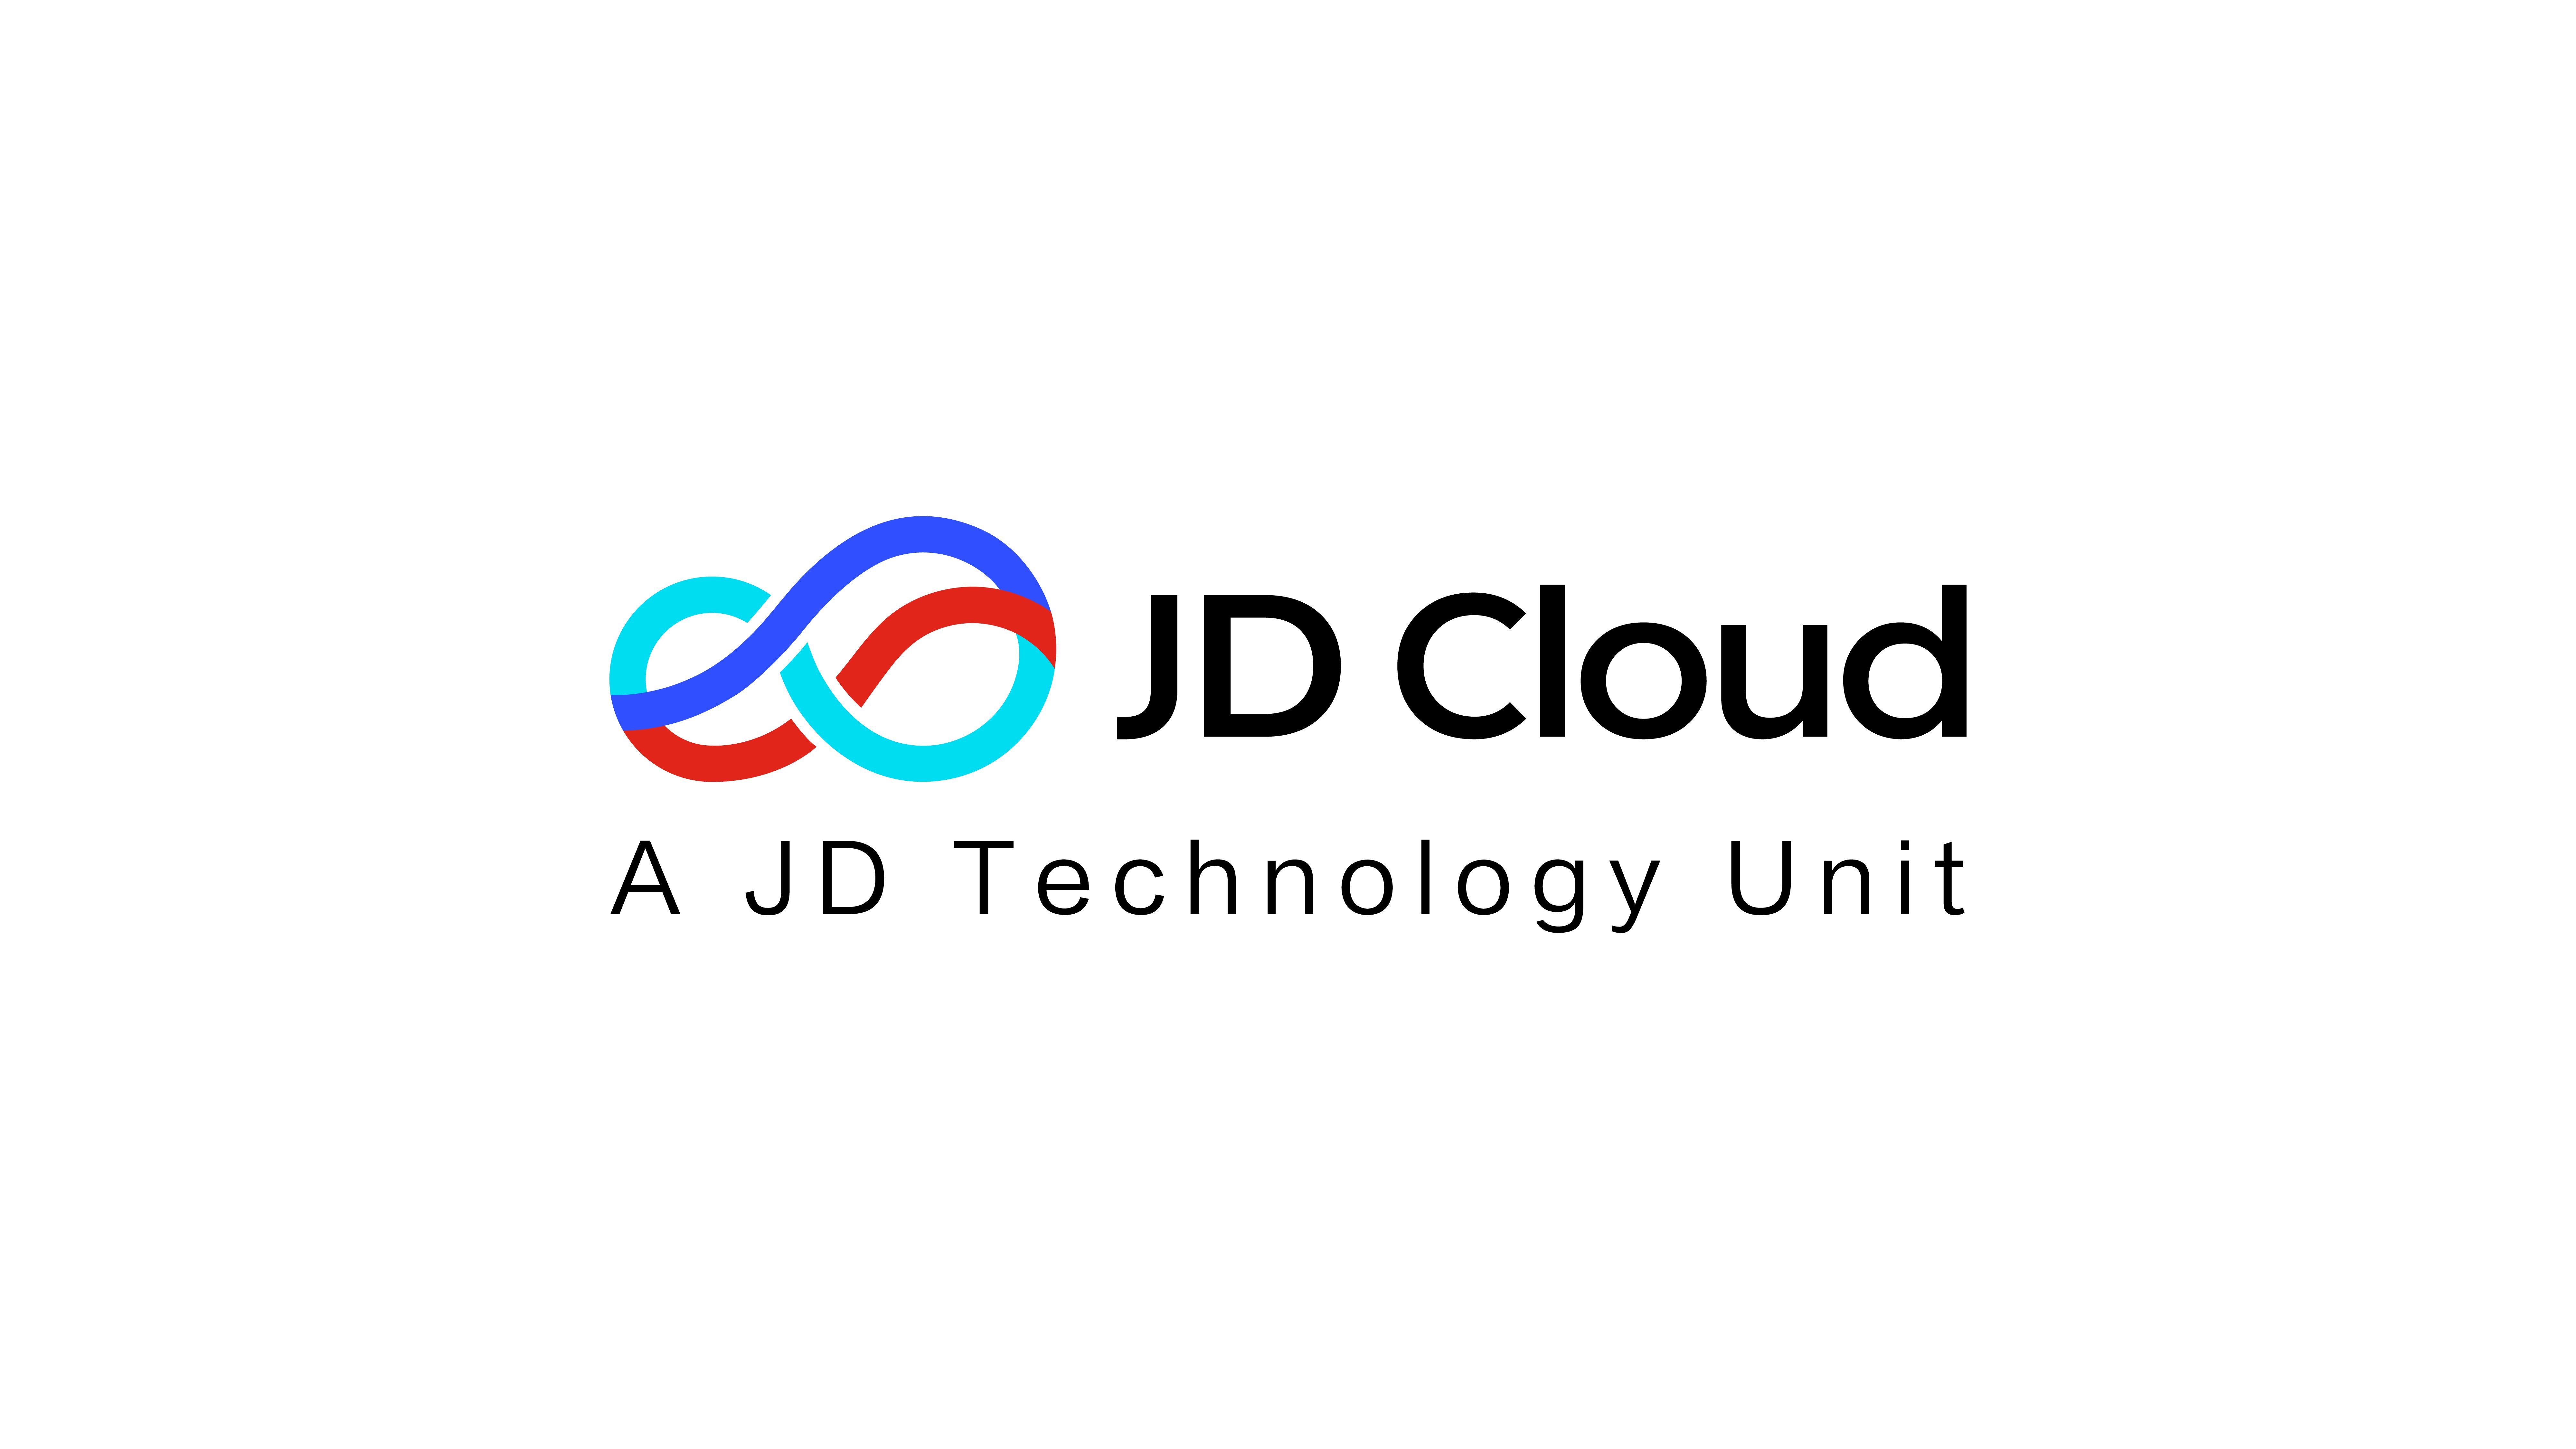 JD Cloud horizontal logo